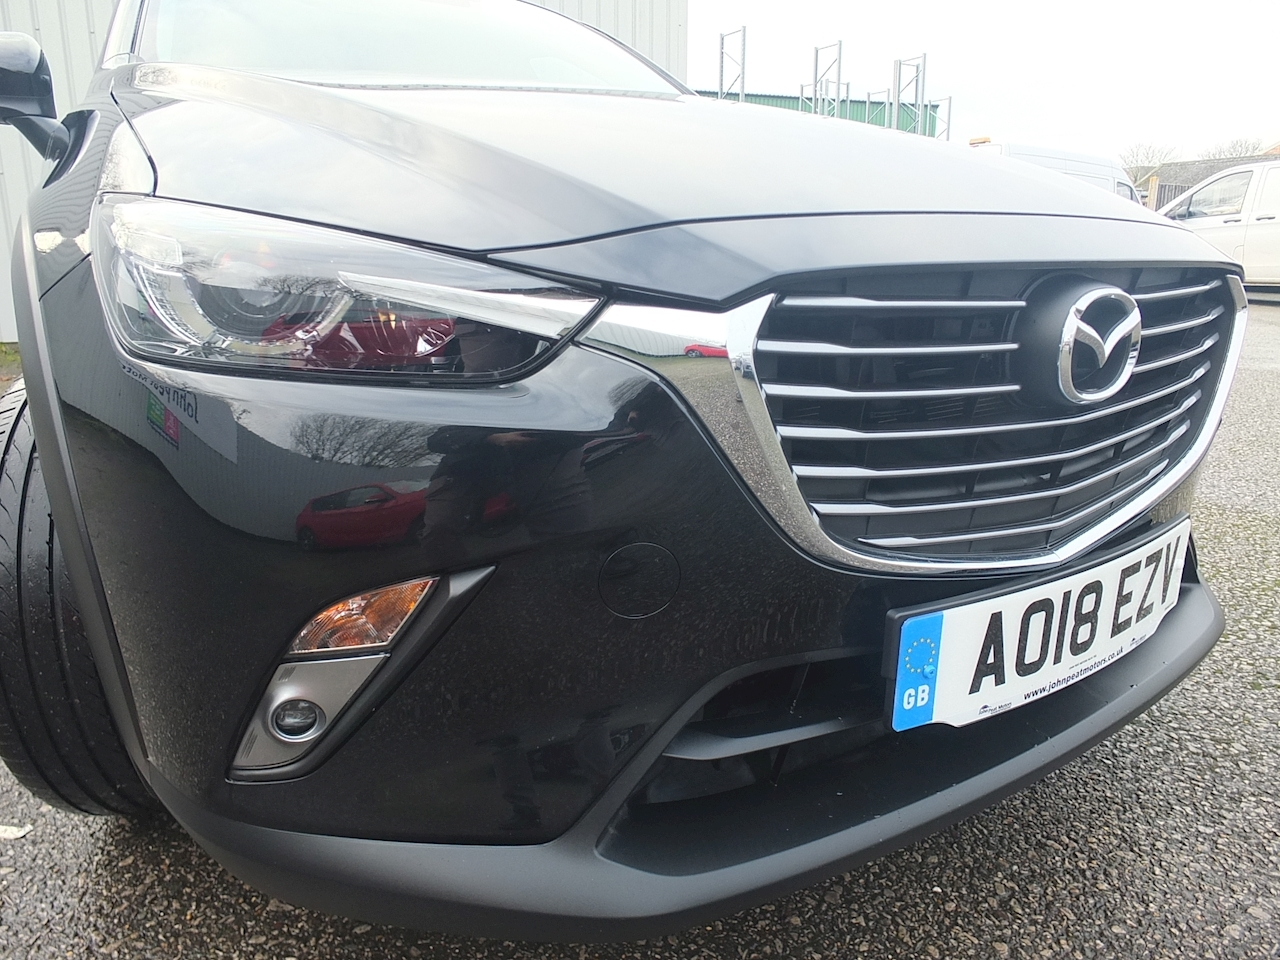 Cx-3 Sport Nav Hatchback 2.0 Manual Petrol